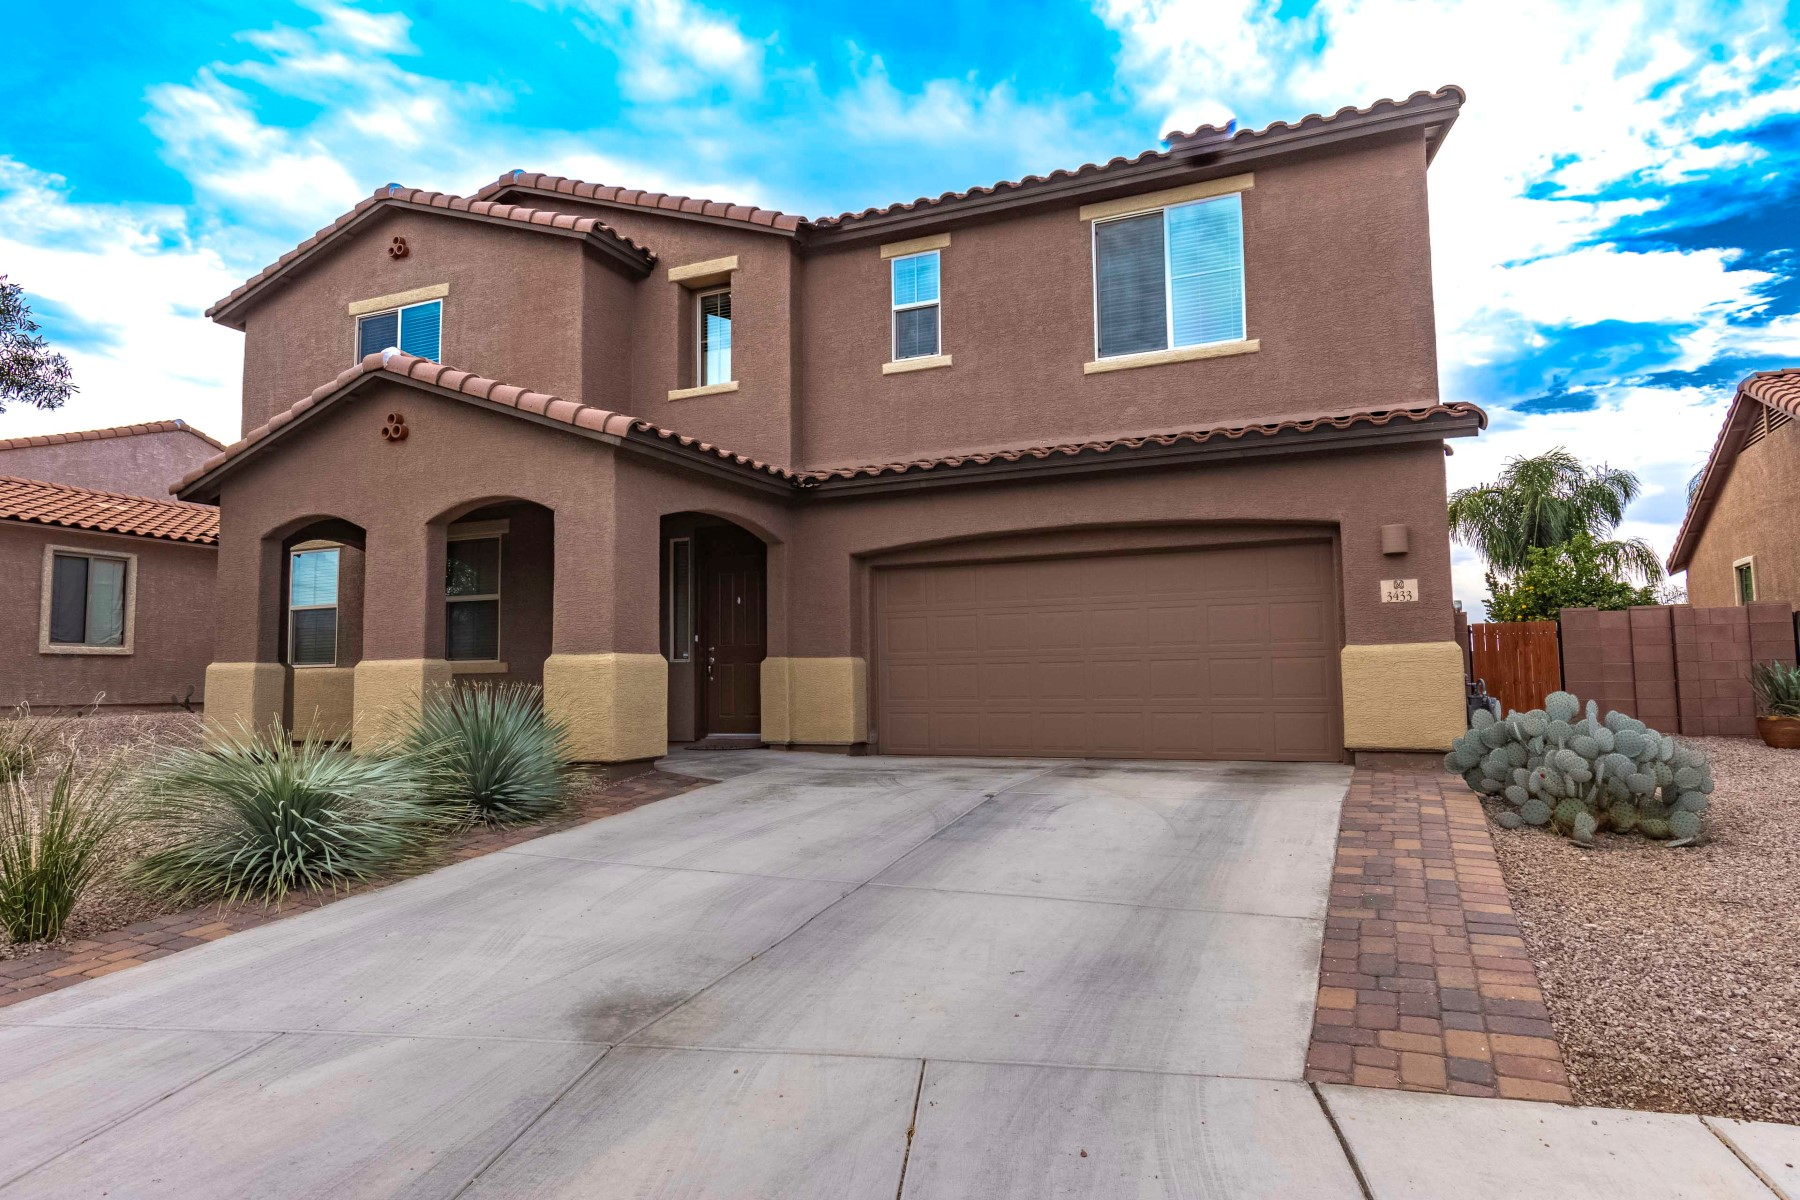 Single Family Homes for Active at Welcome Home to This Gorgeous Upgraded Home 3433 W Bell Song Place Marana, Arizona 85658 United States